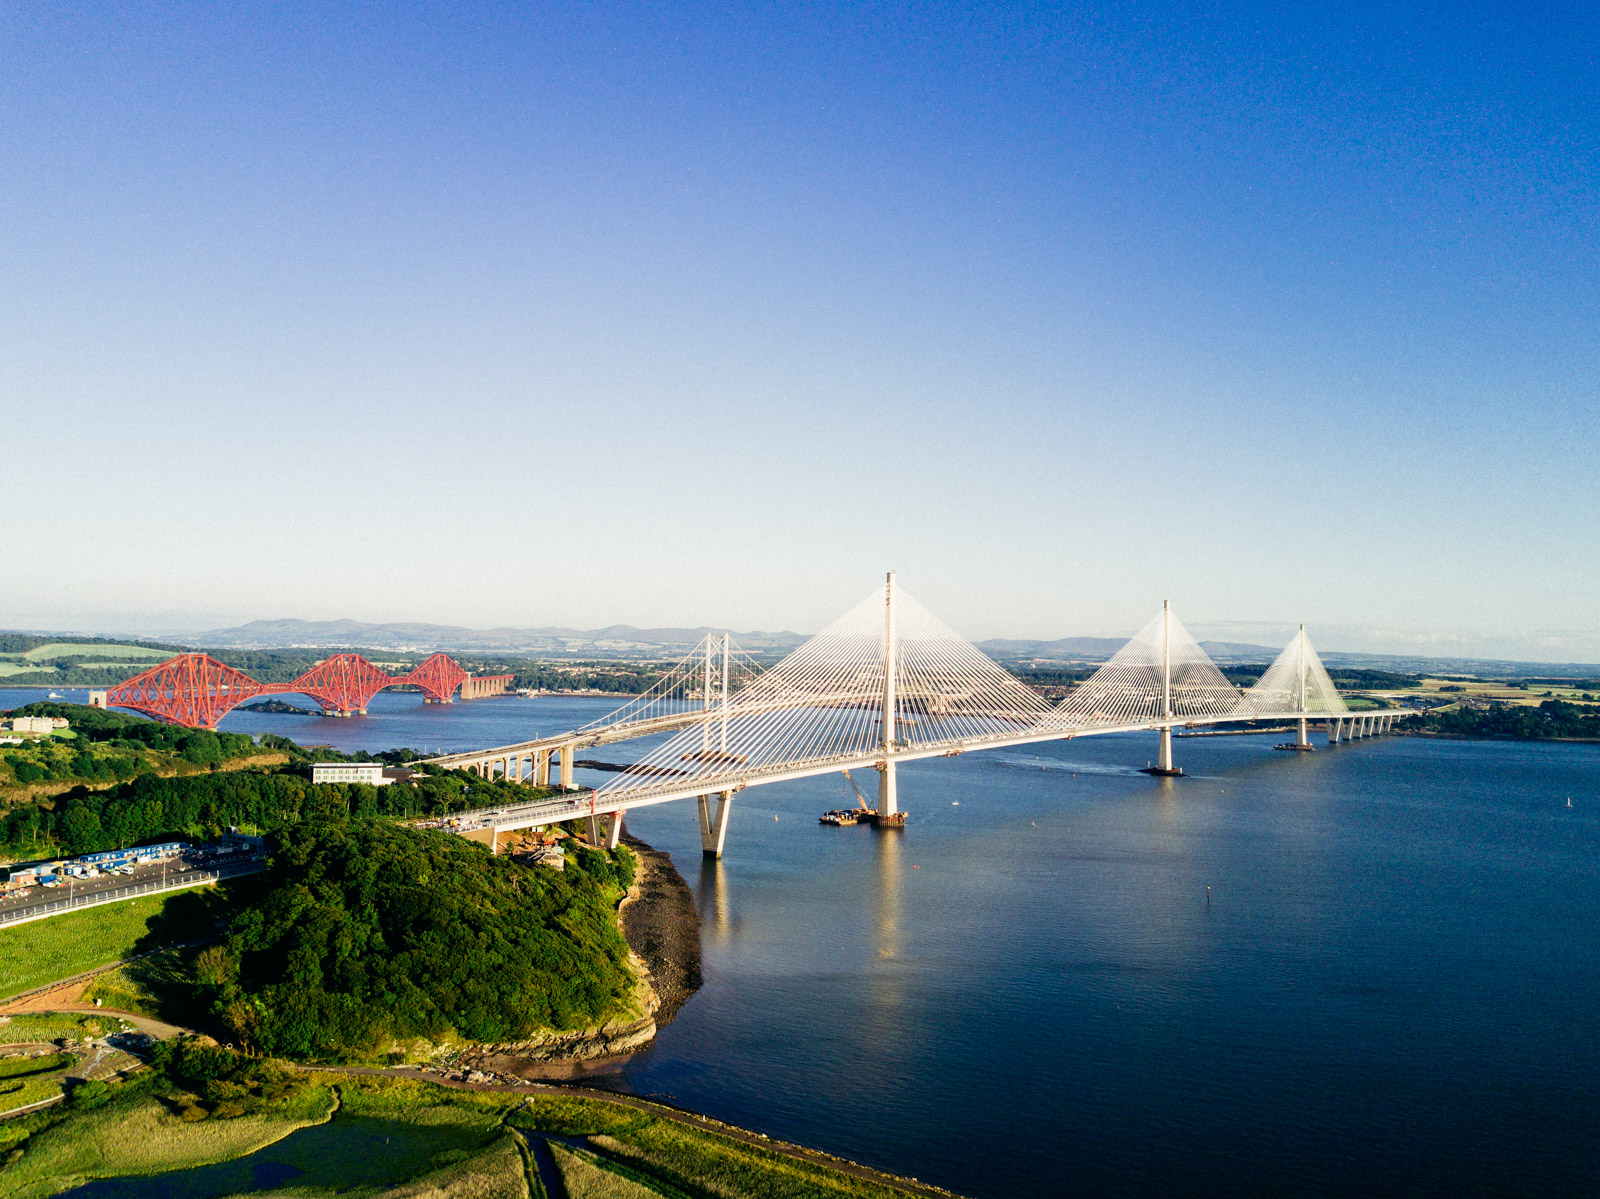 Queensferry Crossing with the Forth Road Bridge and the Forth Bridge behind it